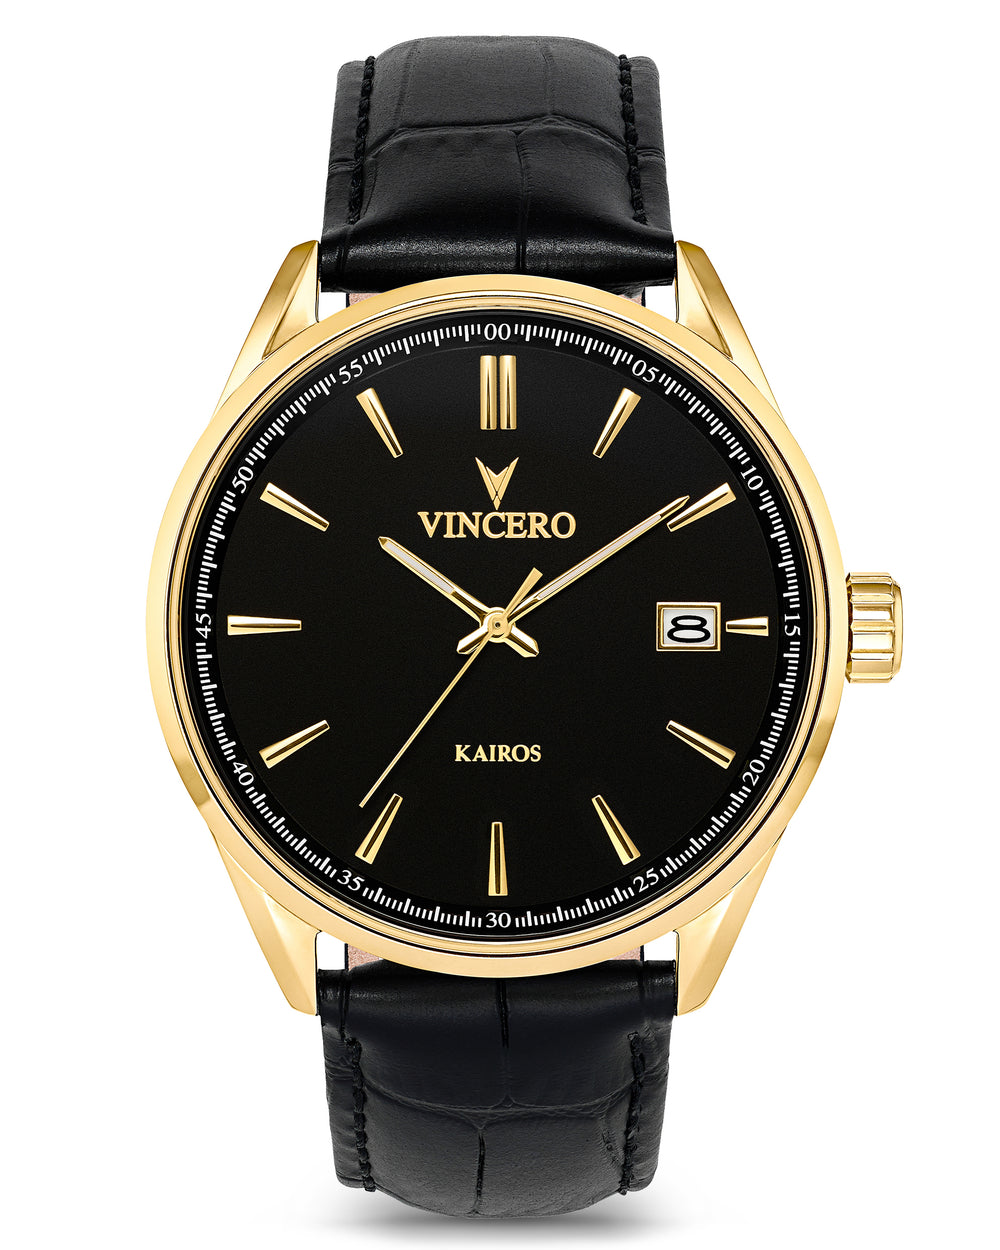 The Kairos - Black/Gold